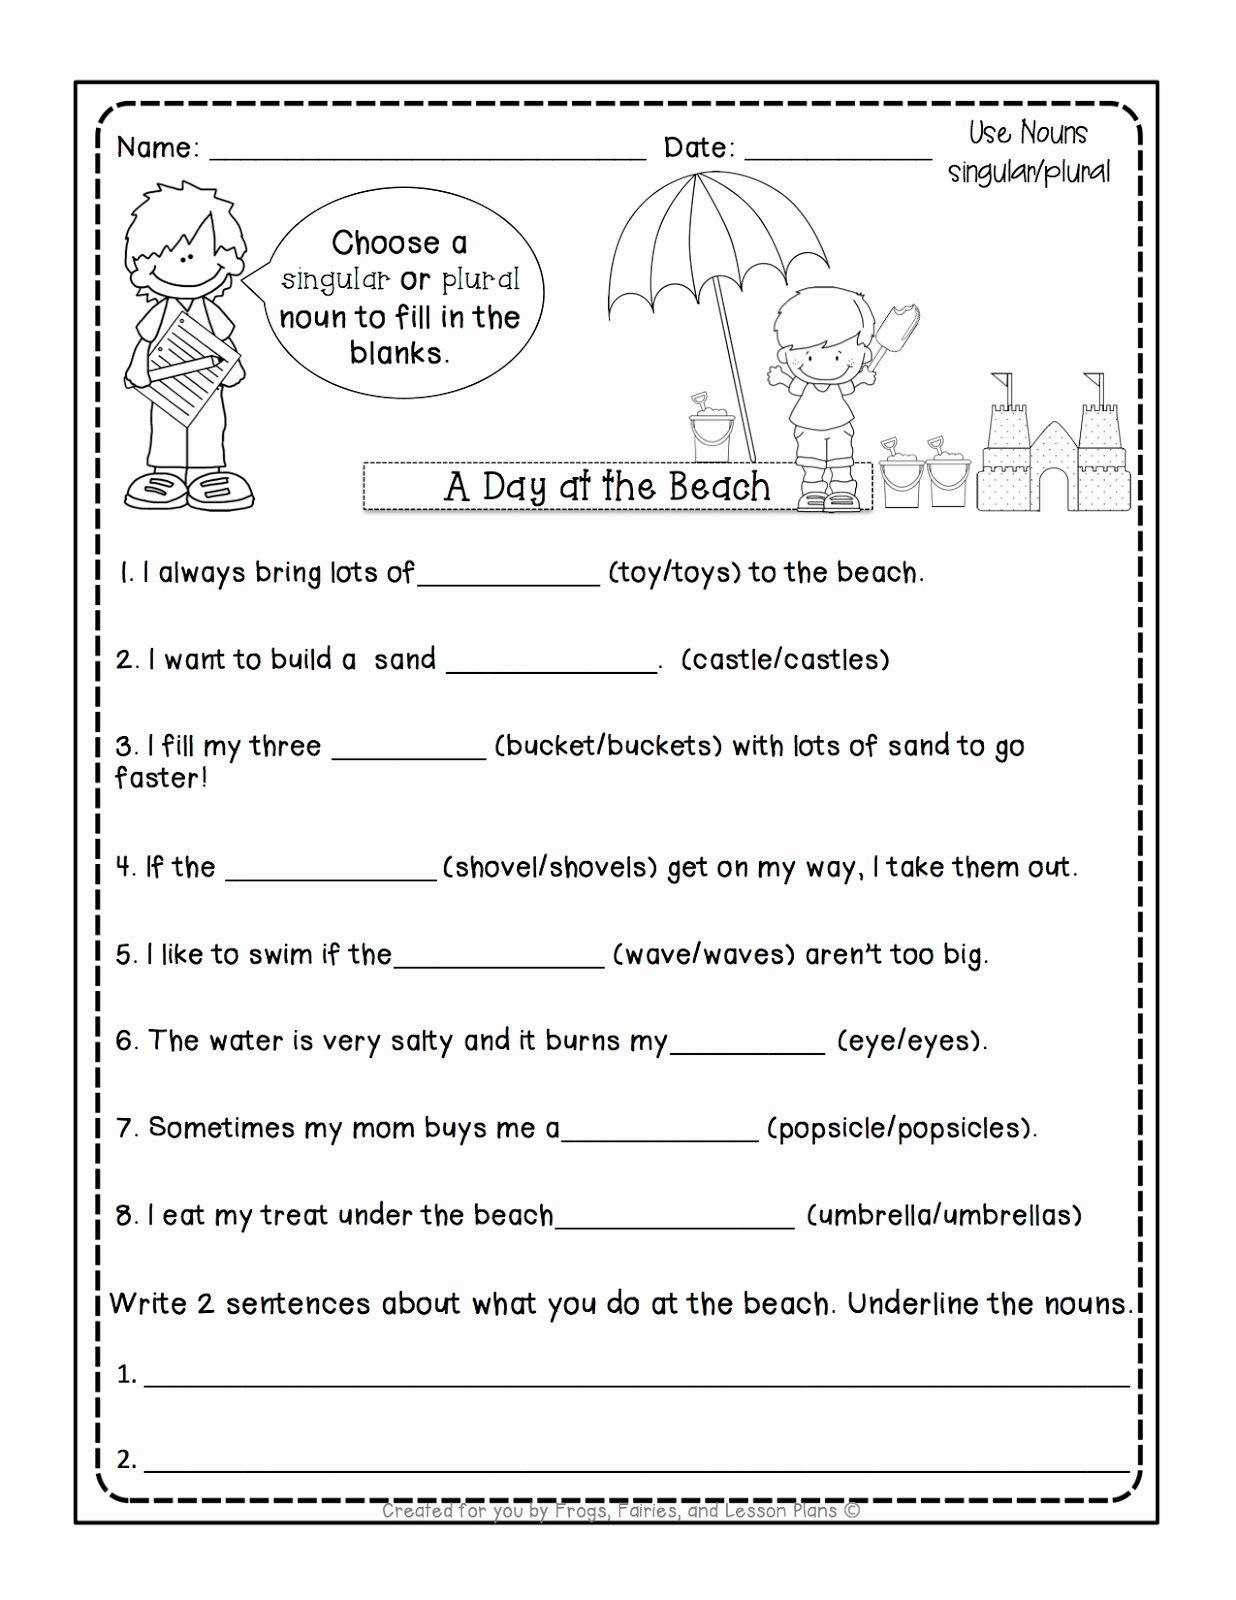 Singular and Plural Nouns Worksheet Elegant Frogs Fairies and Lesson Plans 5 Noun Lessons You Need